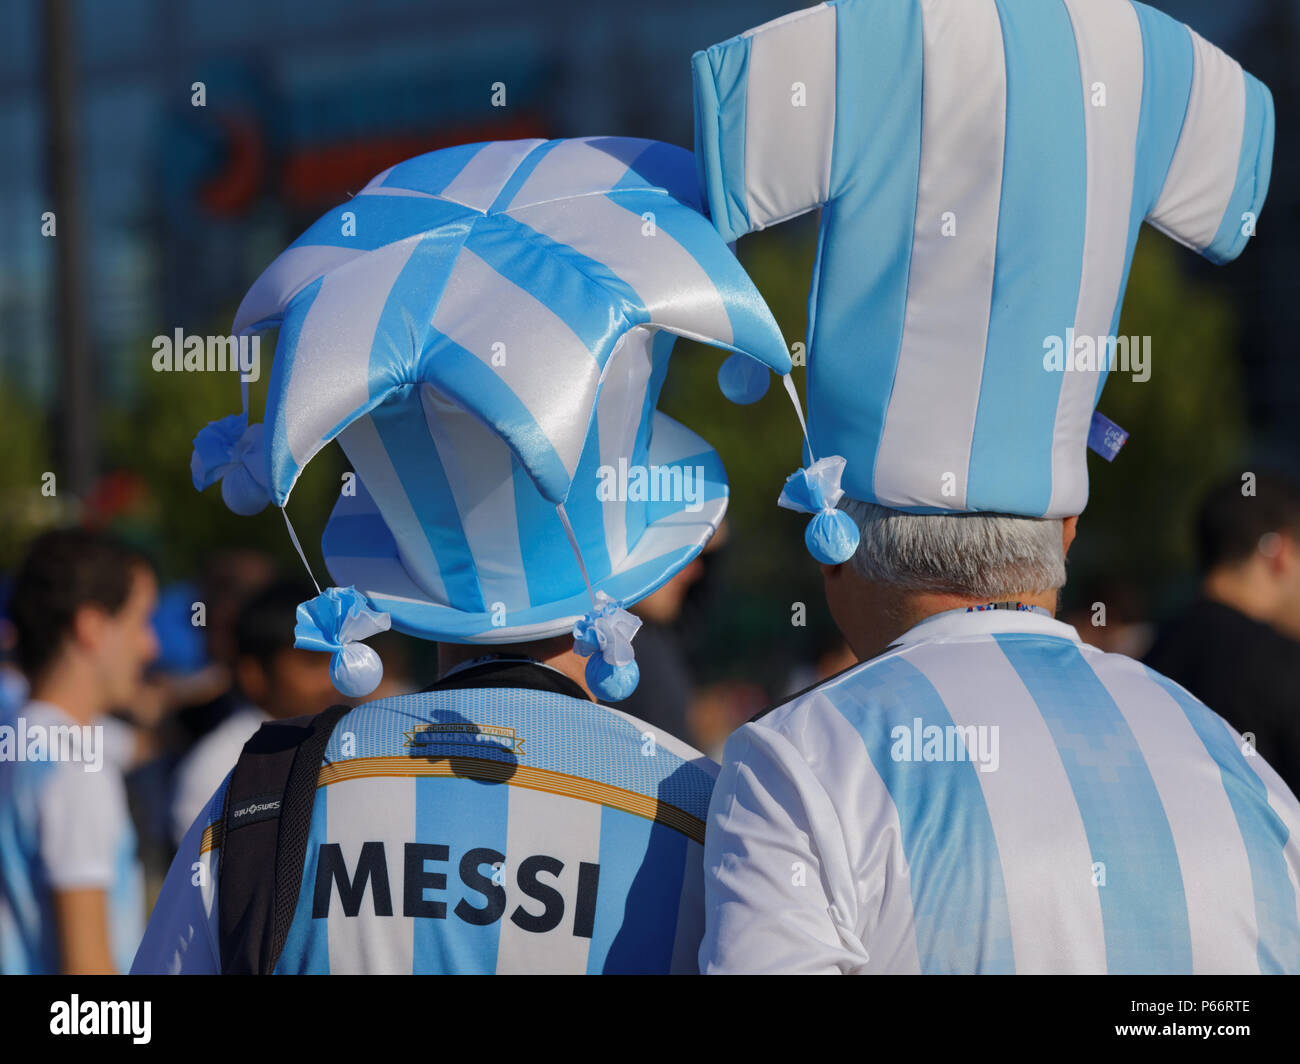 St. Petersburg, Russia - June 26, 2018: Argentinian football fans in top hats at Saint Petersburg stadium during FIFA World Cup 2018 before the match  - Stock Image